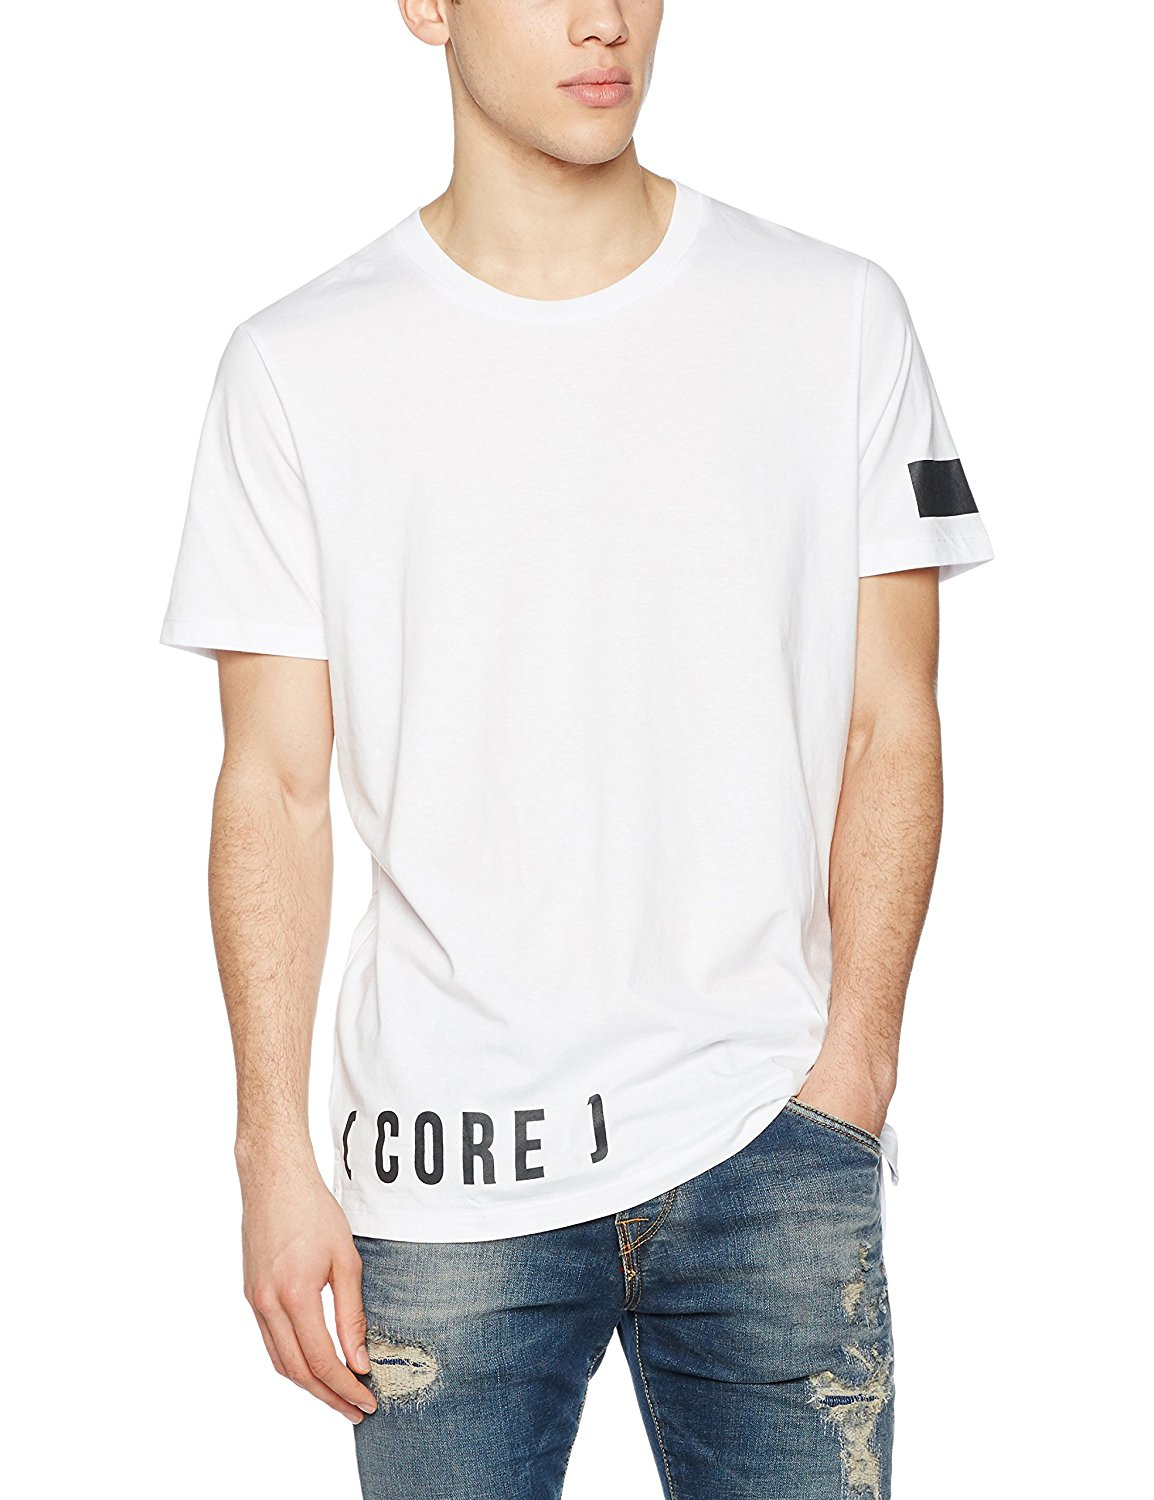 Jack & Jones jcoseeki SS neck t-shirt men's shirt T T